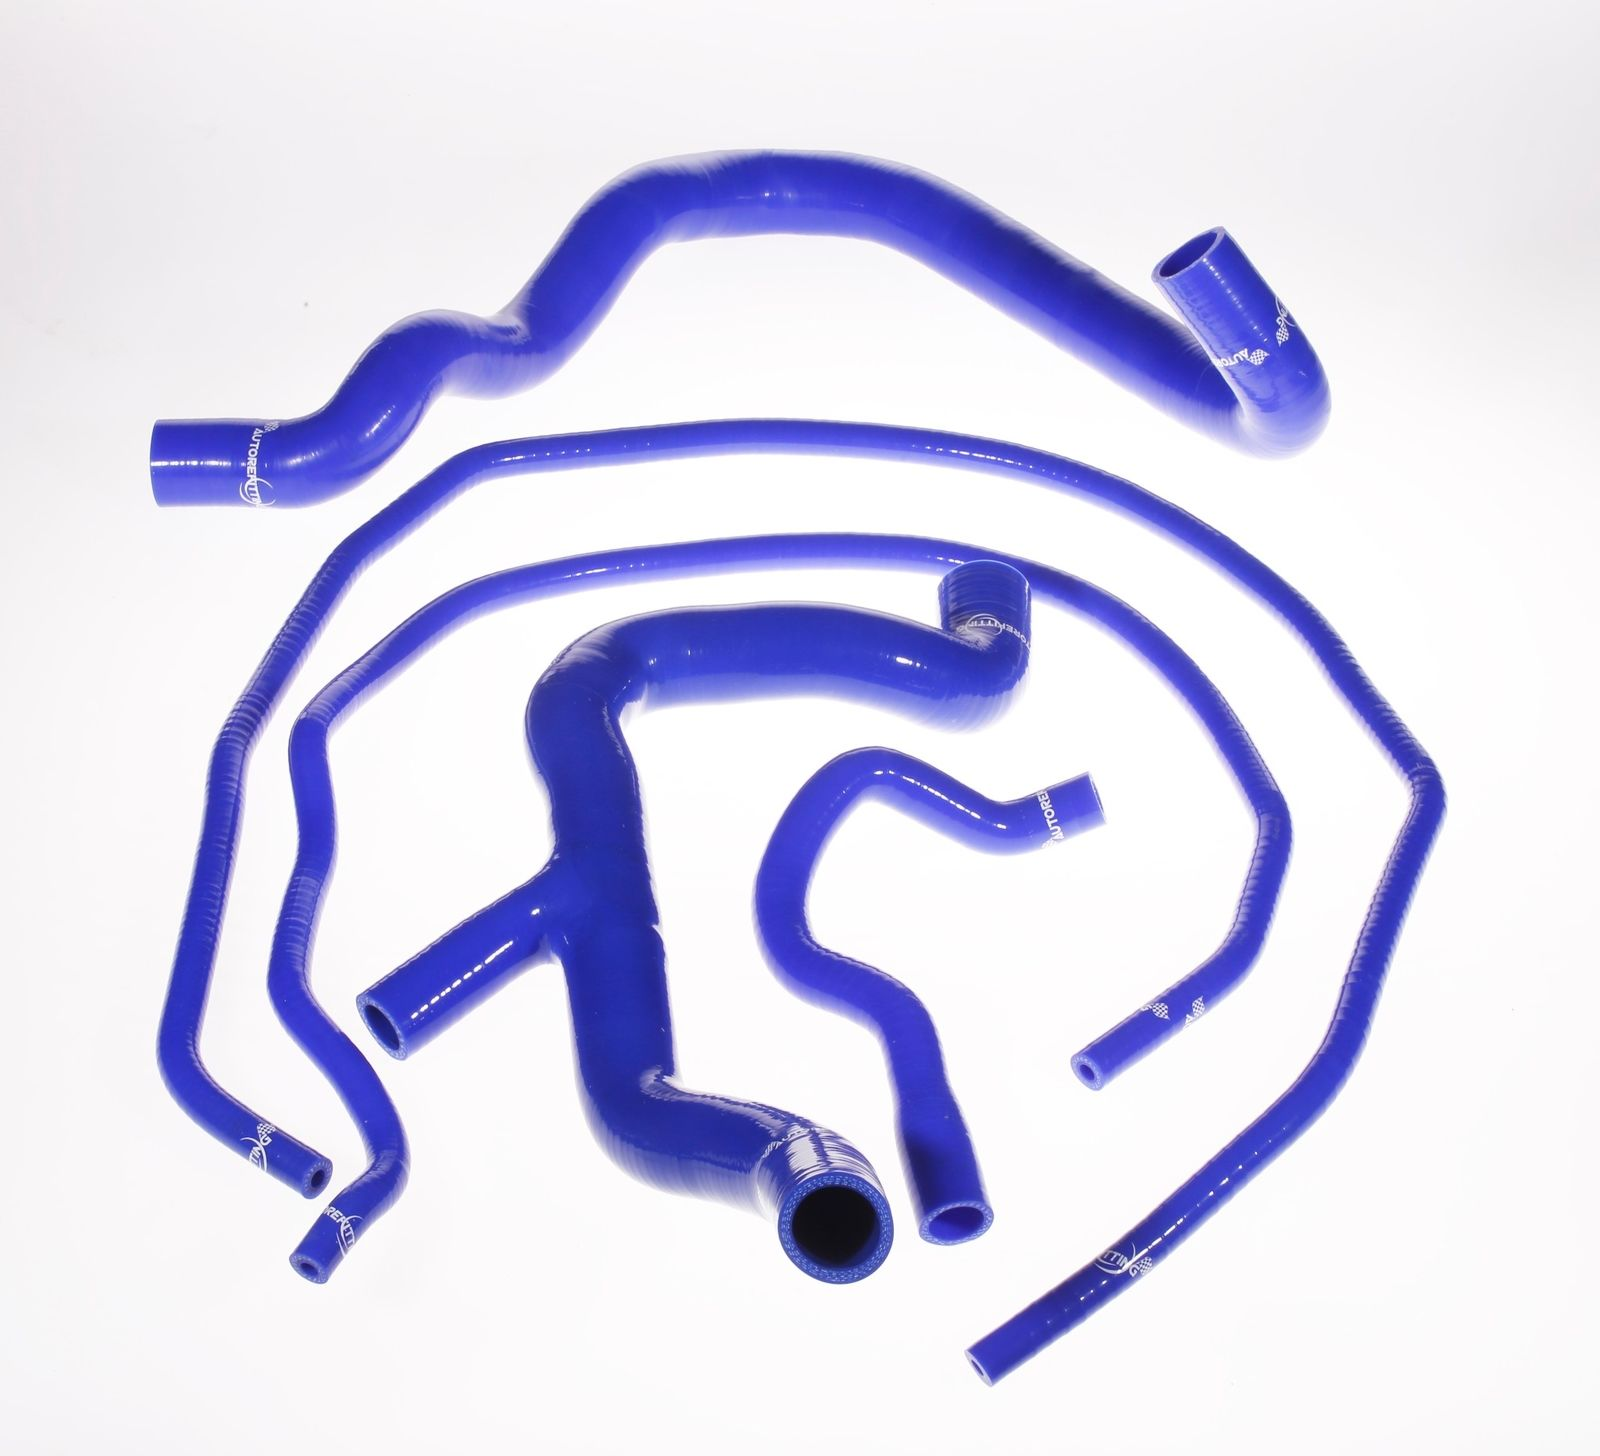 Universal Bule Silicone Coolant Hose Kit For Ford ST 225